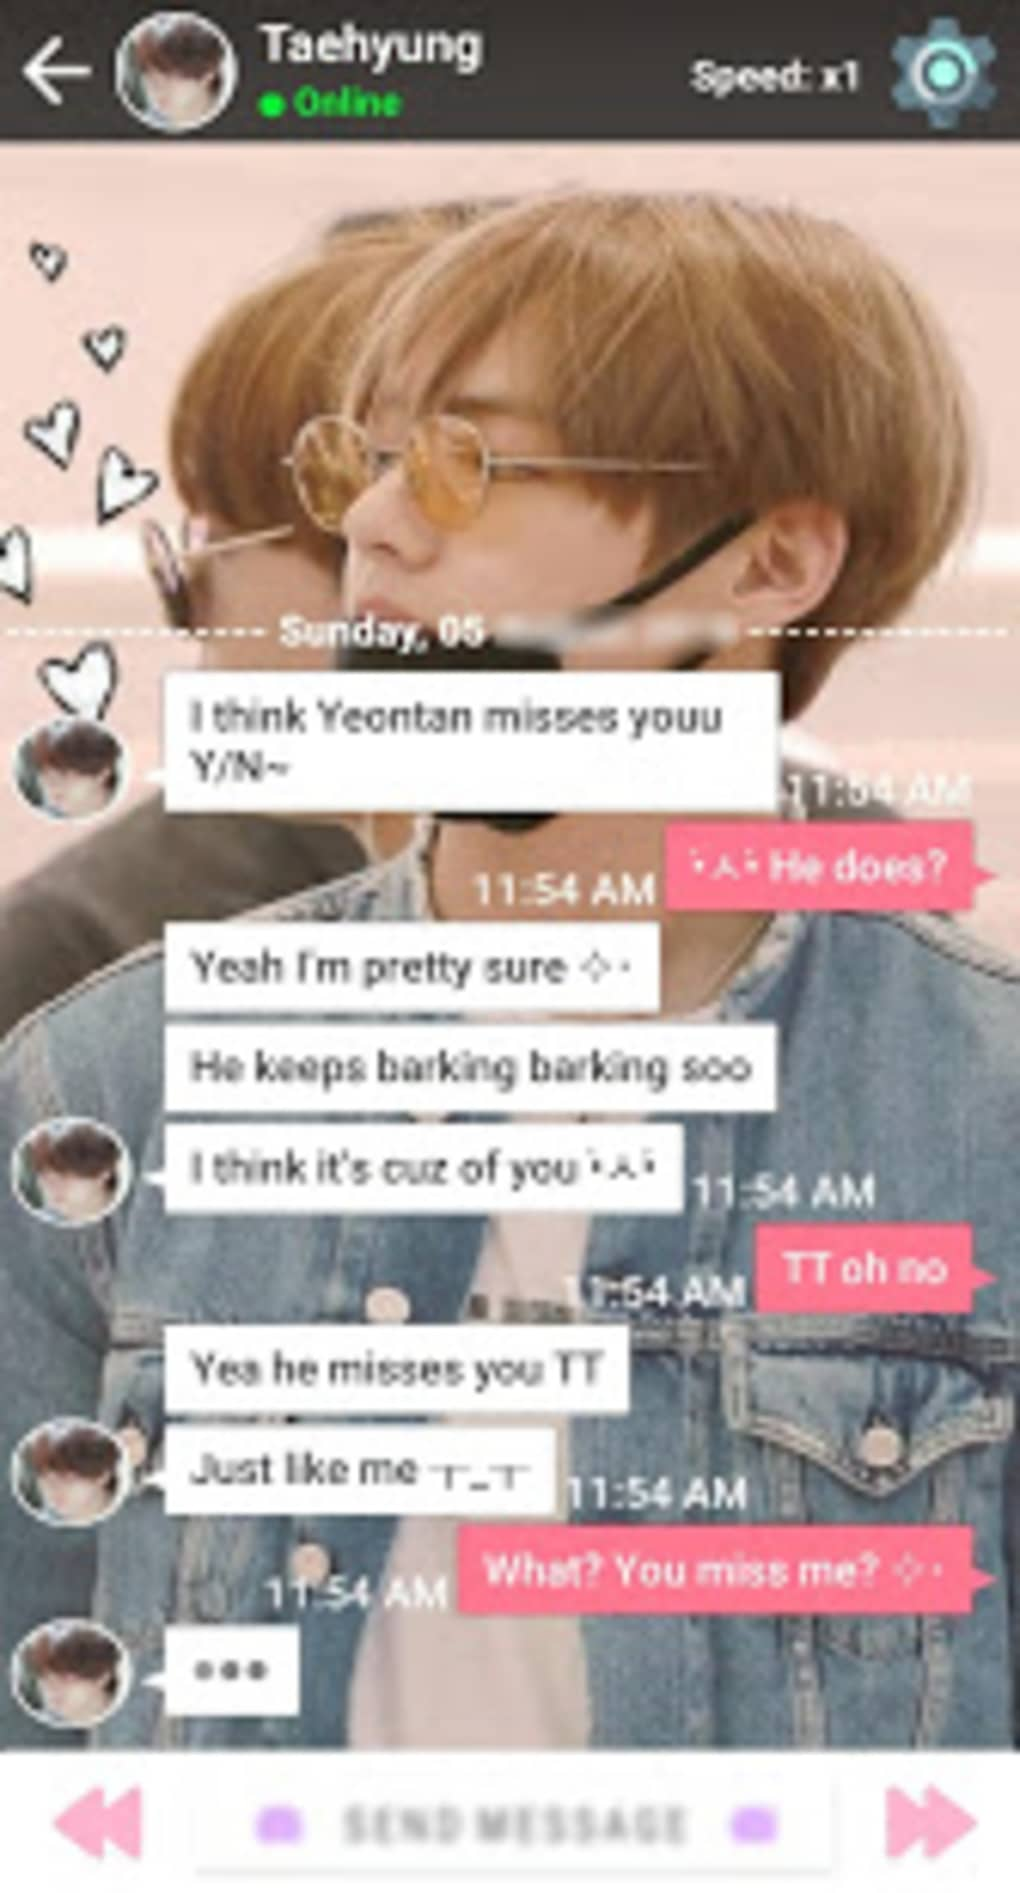 BTS Messenger 2 for Android - Download